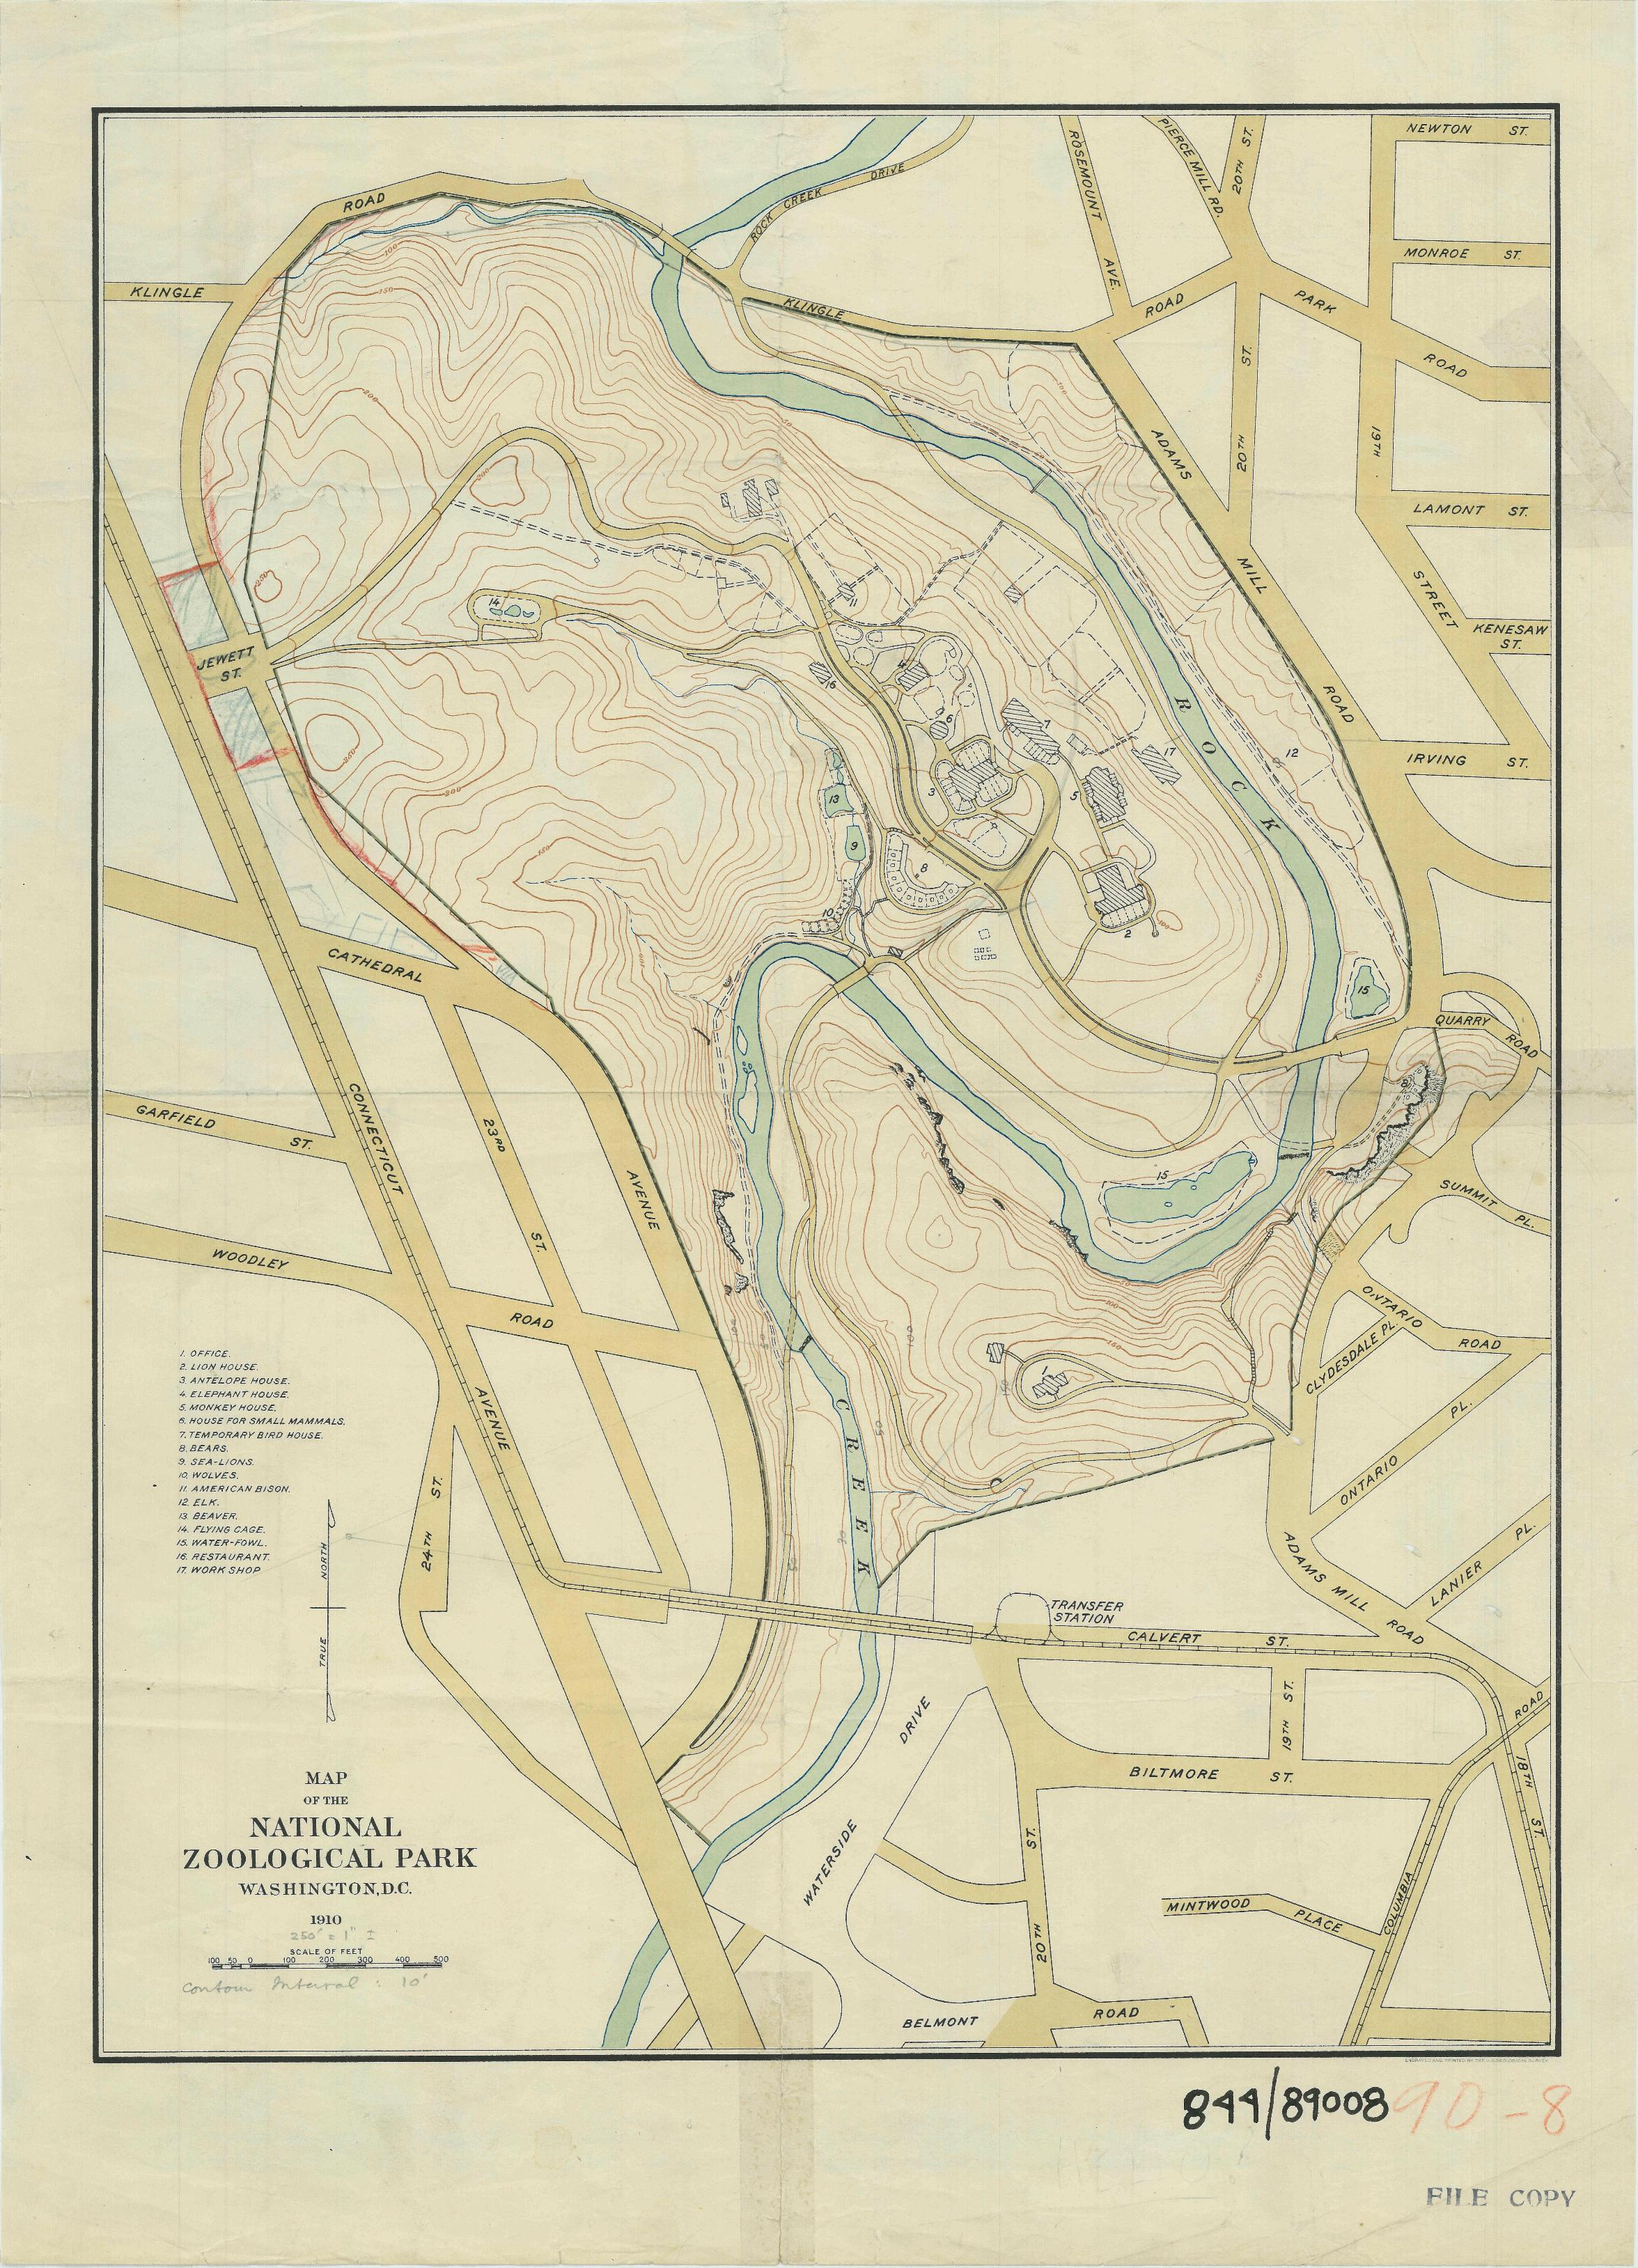 RG 79, National Capital Parks Numbered Drawings, 844-89008